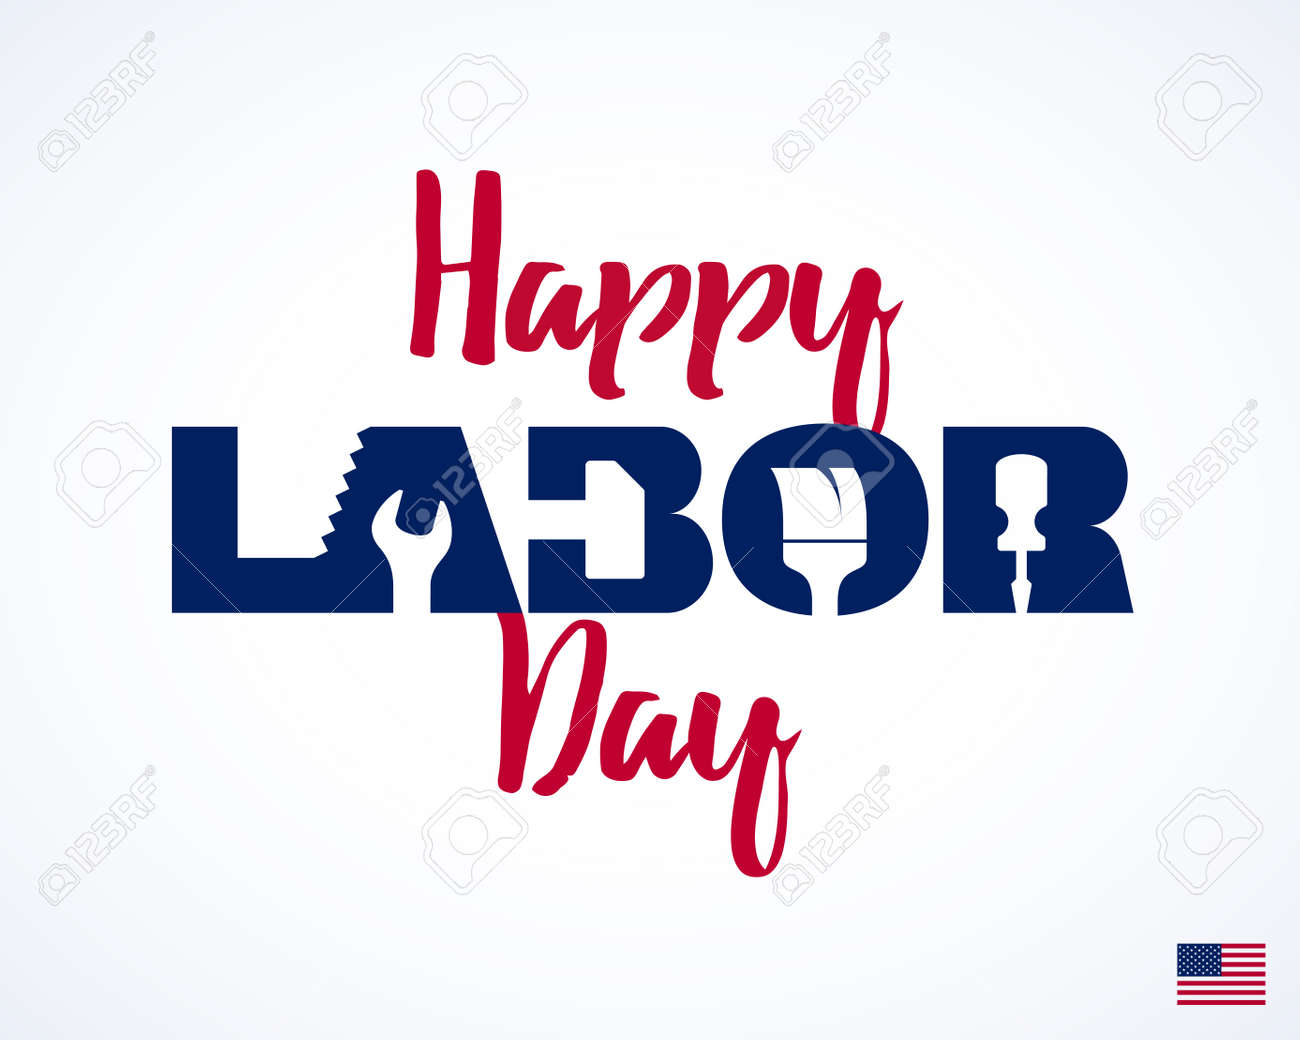 Greeting cards graphic design vector and clip art inspiration happy labor day greeting card design american national holiday rh 123rf com greeting card graphic design jobs m4hsunfo